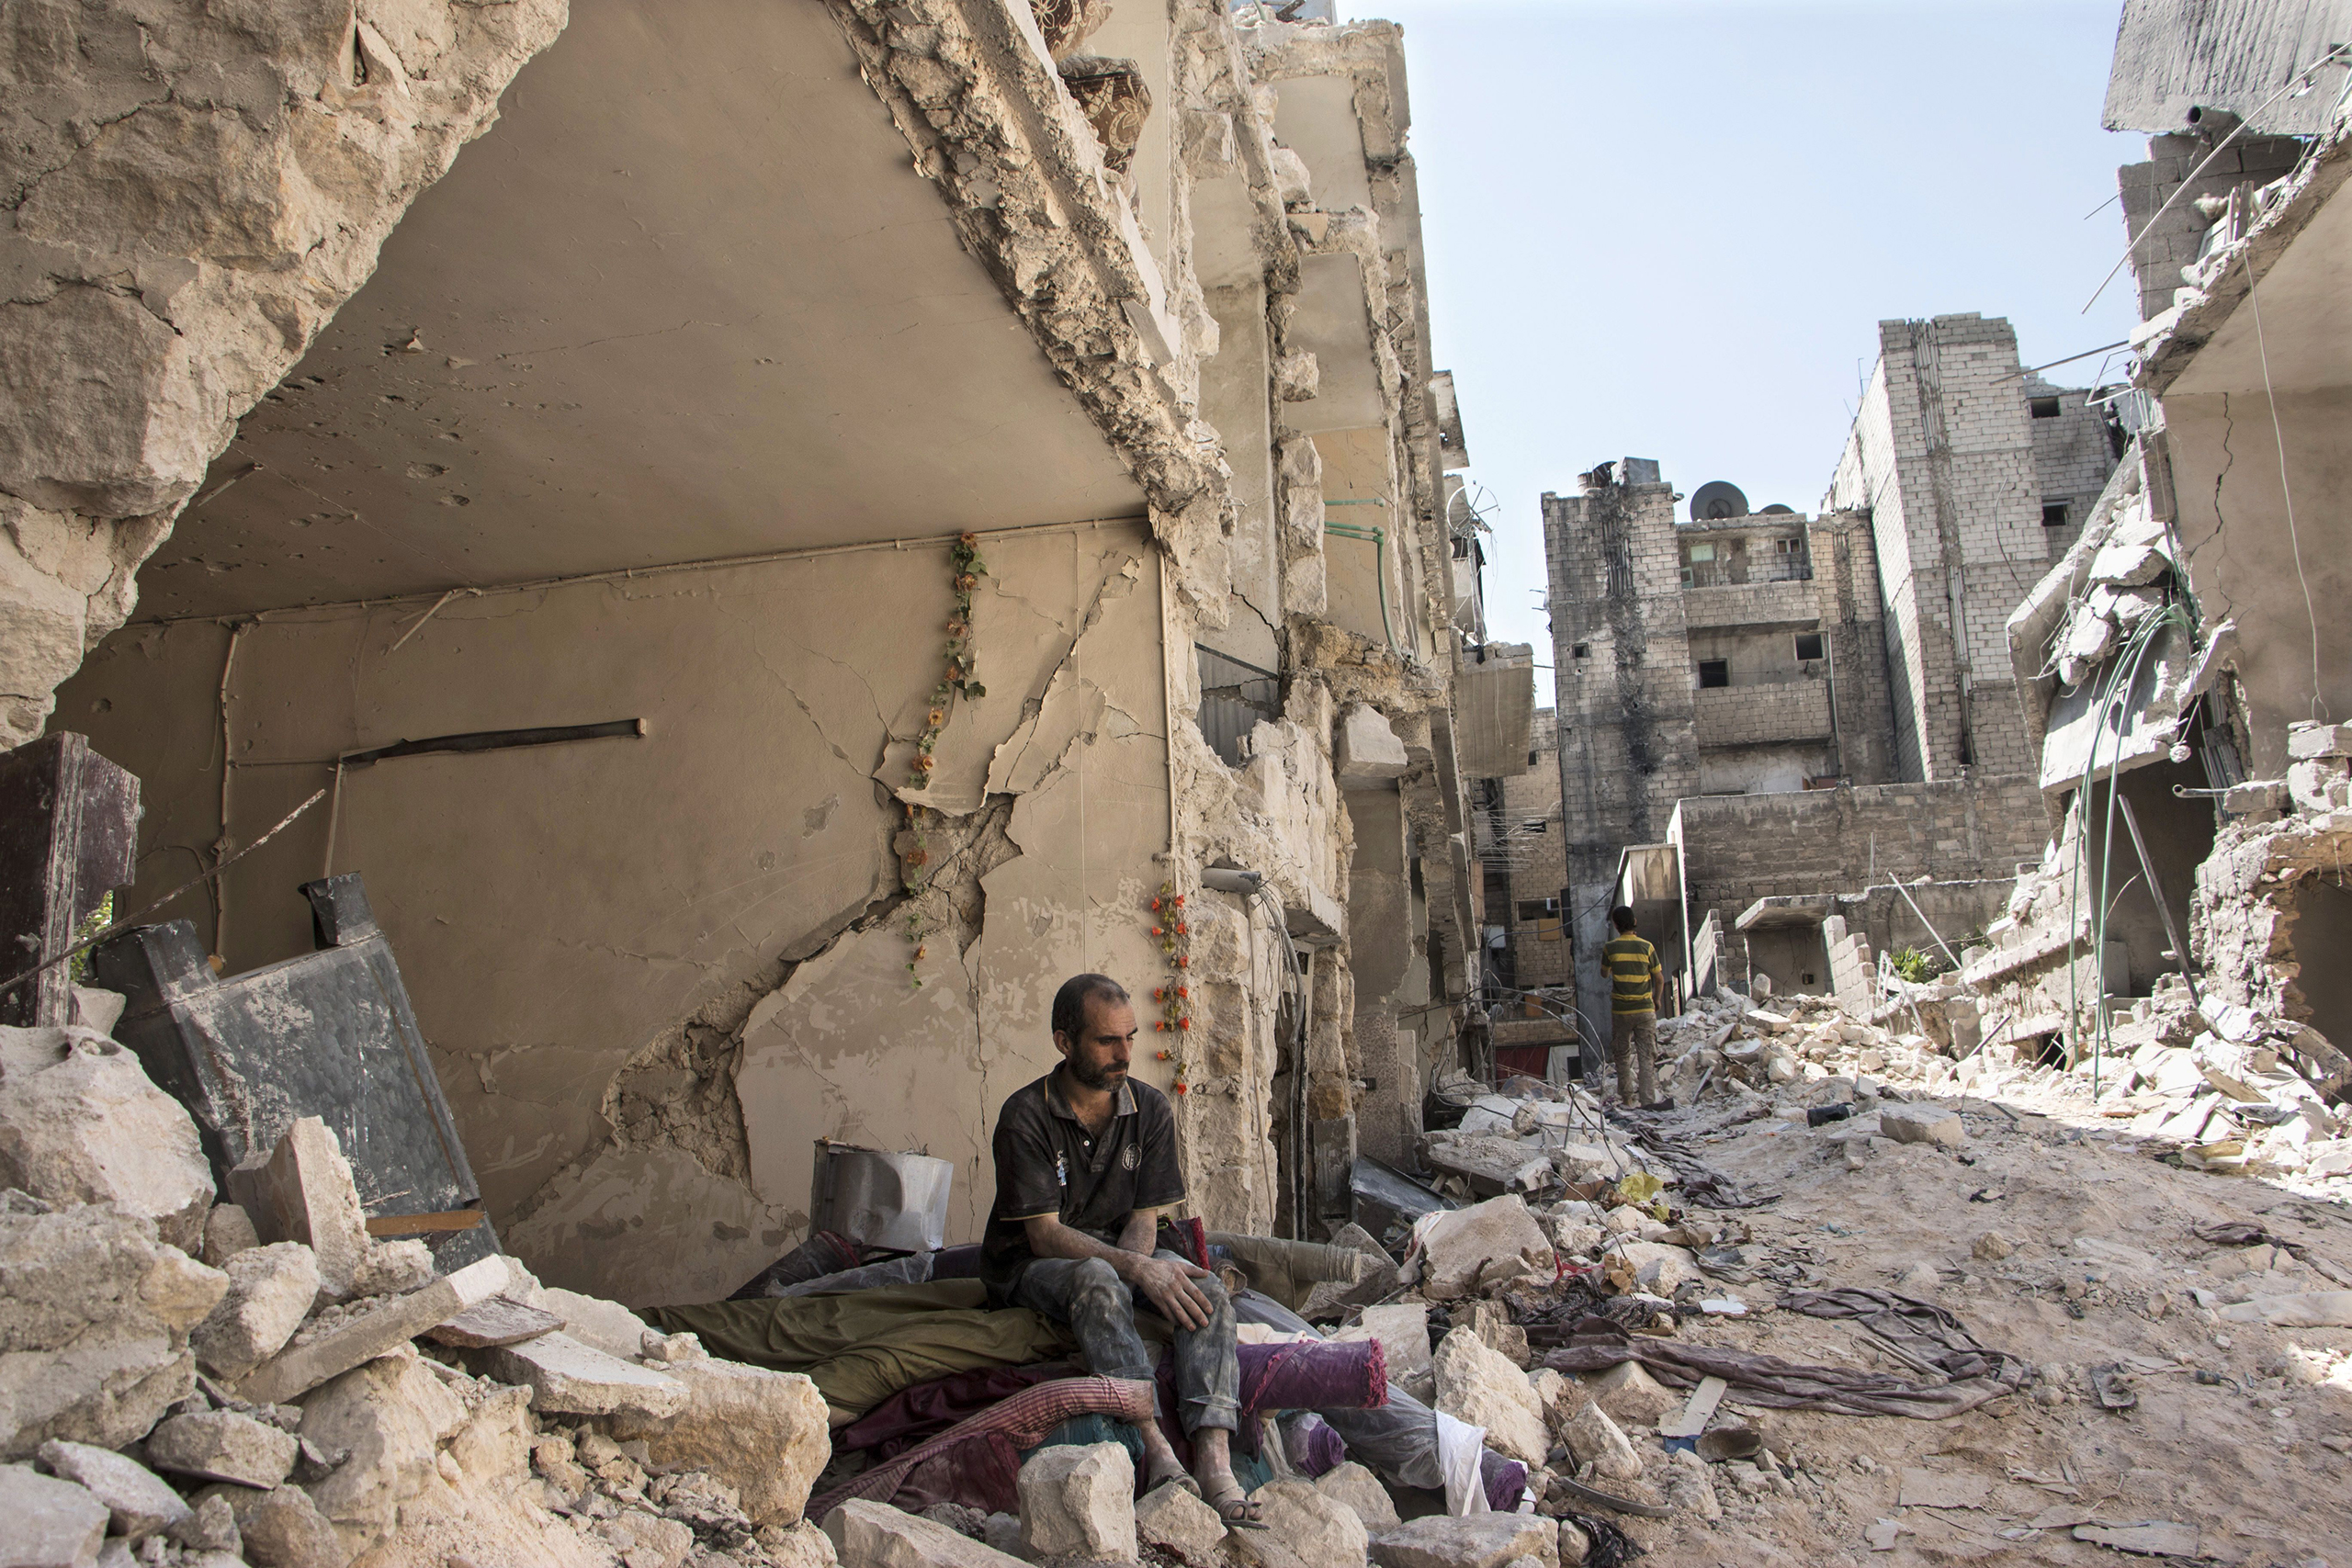 A Syrian man sits in the rubble following a barrel bomb attack the previous day on the rebel-held neighborhood of al-Mashad in Aleppo on Sept. 17, 2015.